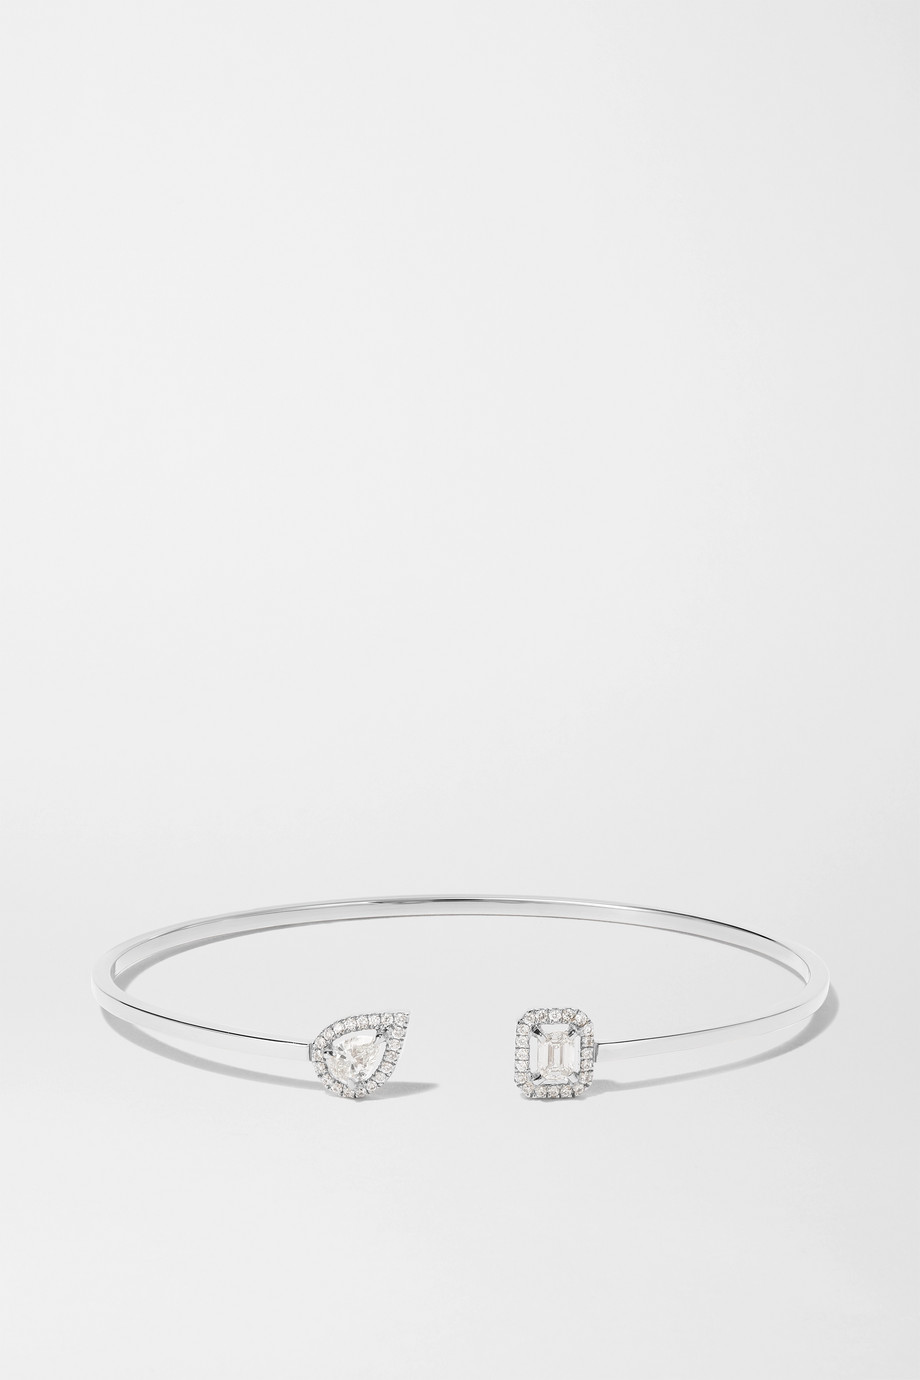 Messika Bracelet en or blanc 18 carats et diamants My Twin Toi & Moi